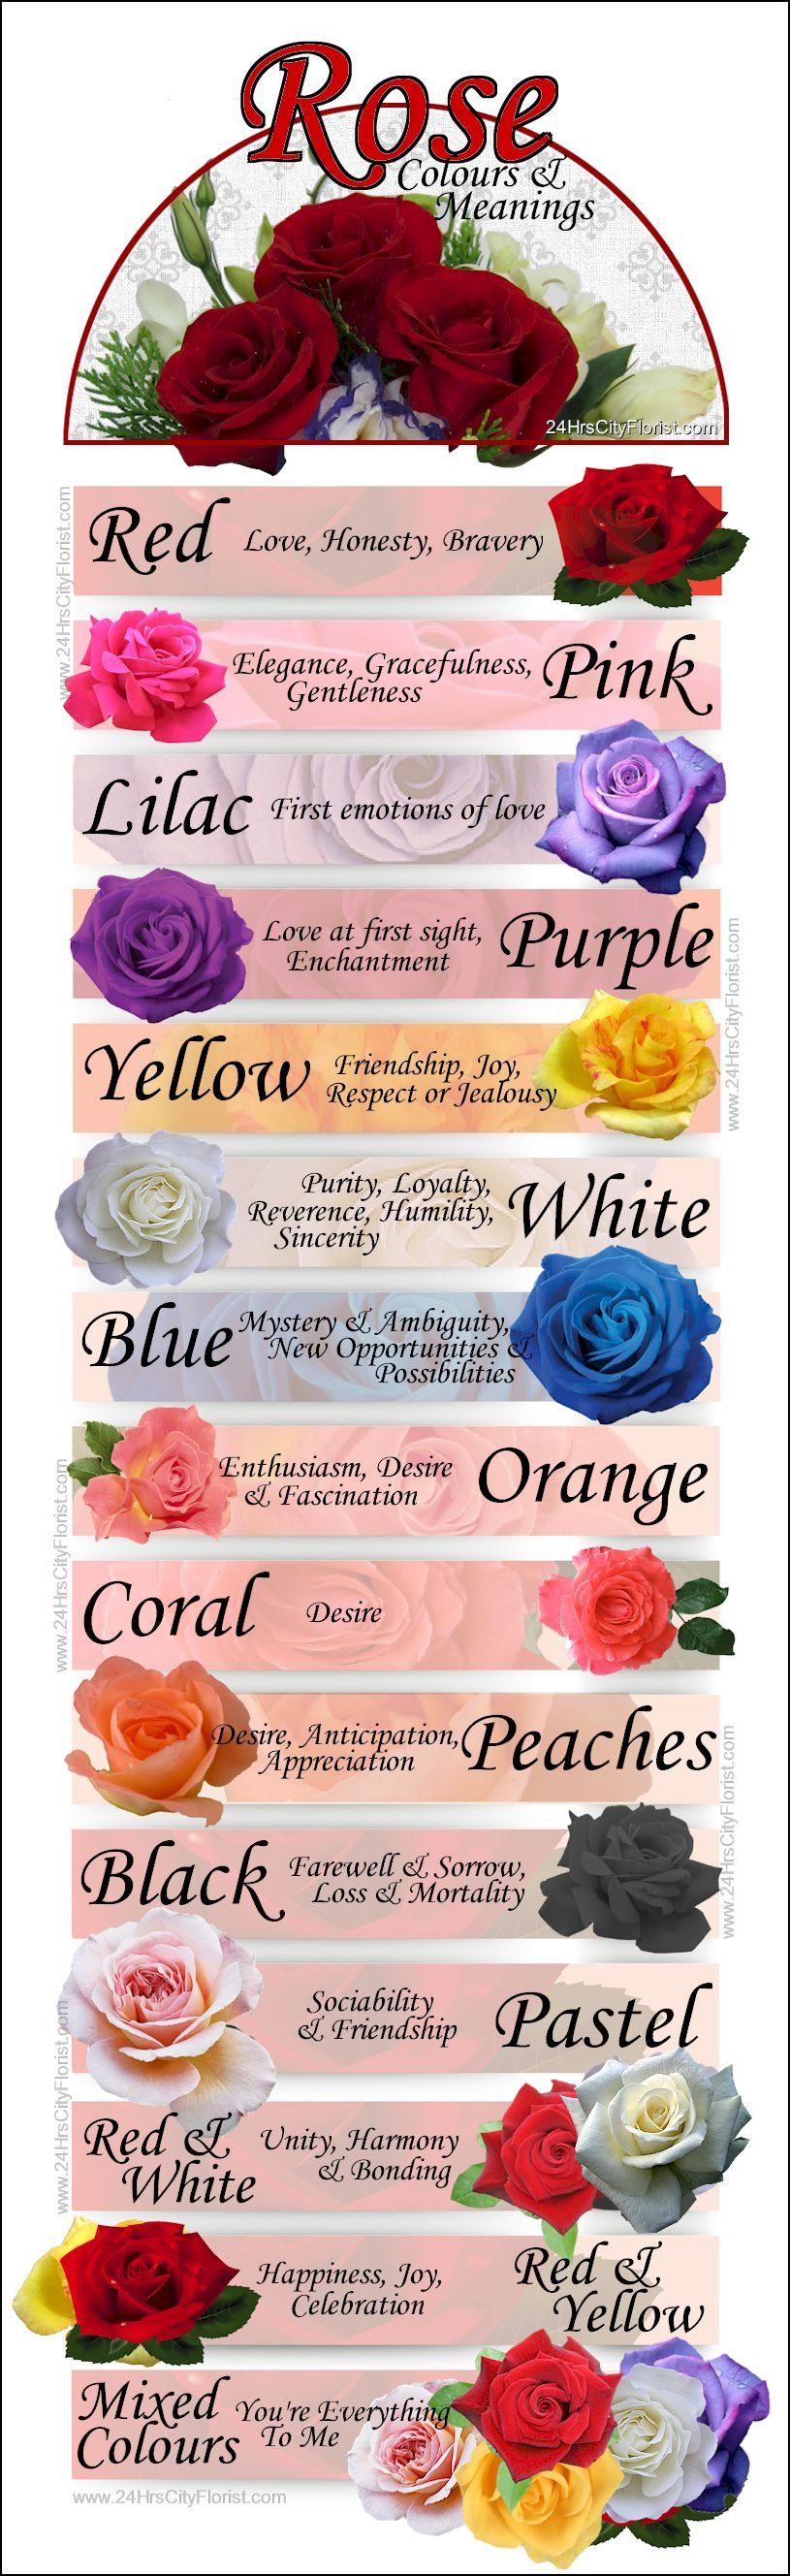 Rose-colour-meaning_24hrscityflorist.com